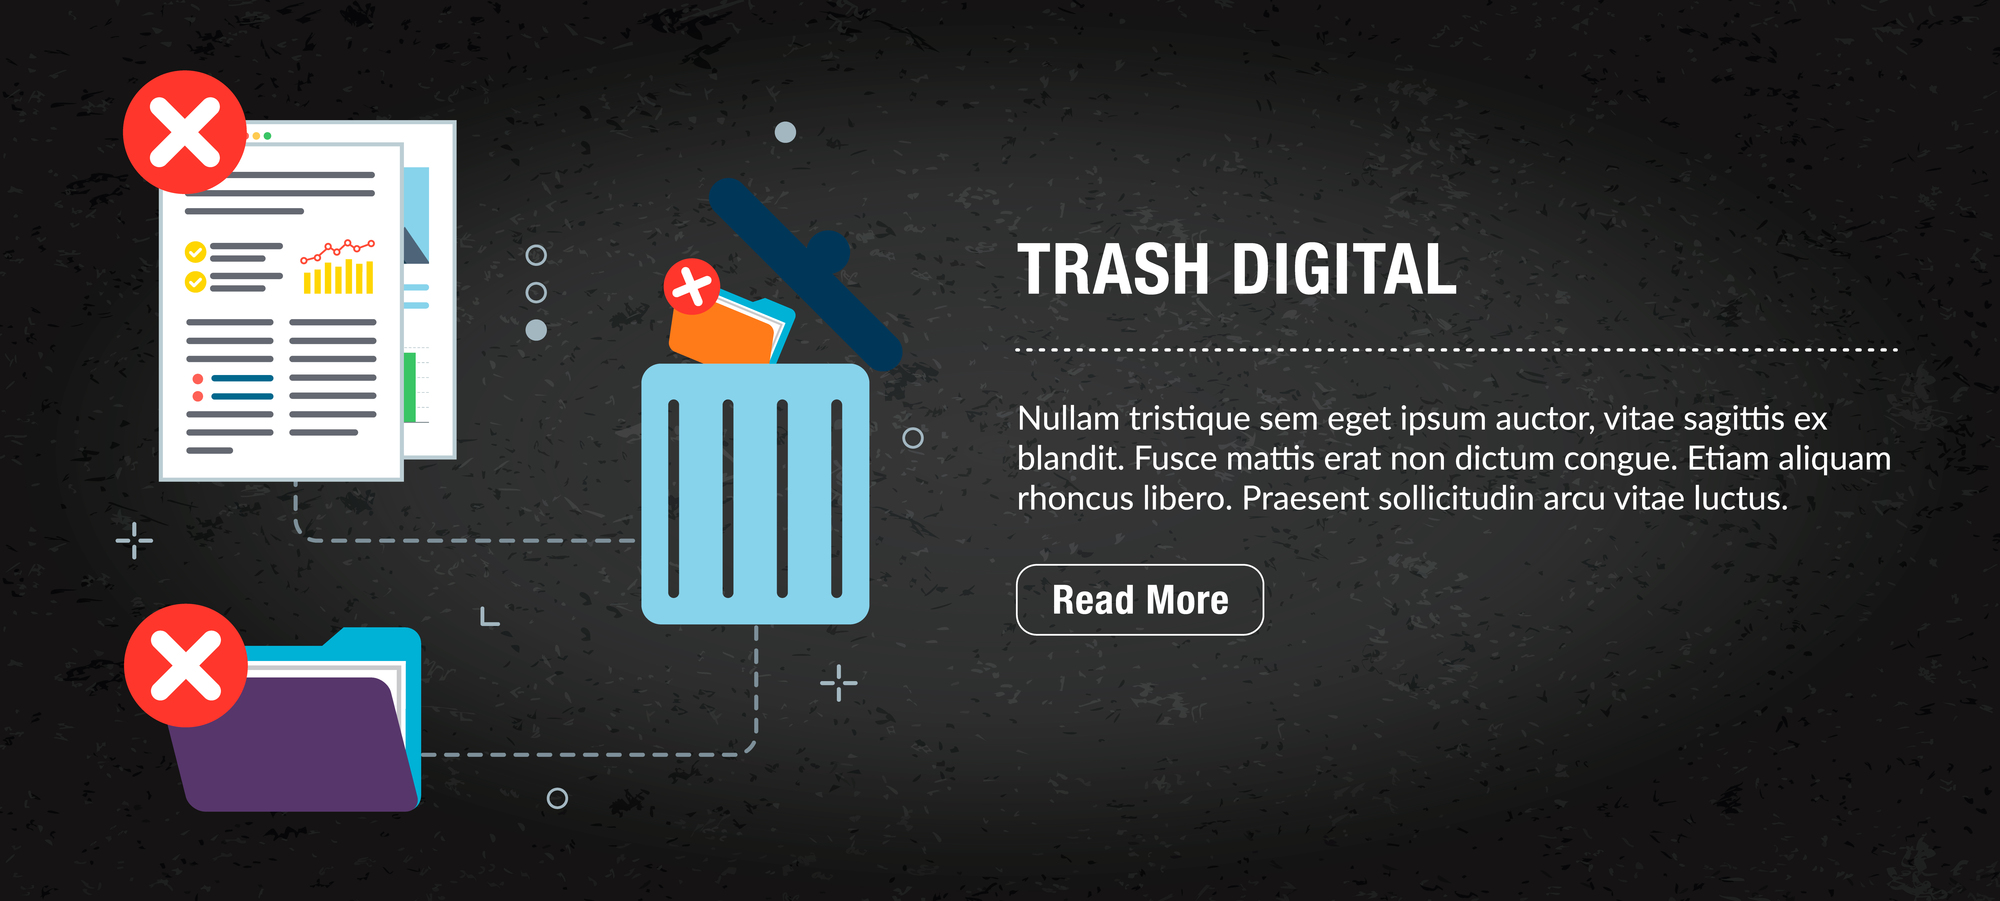 Trash digital